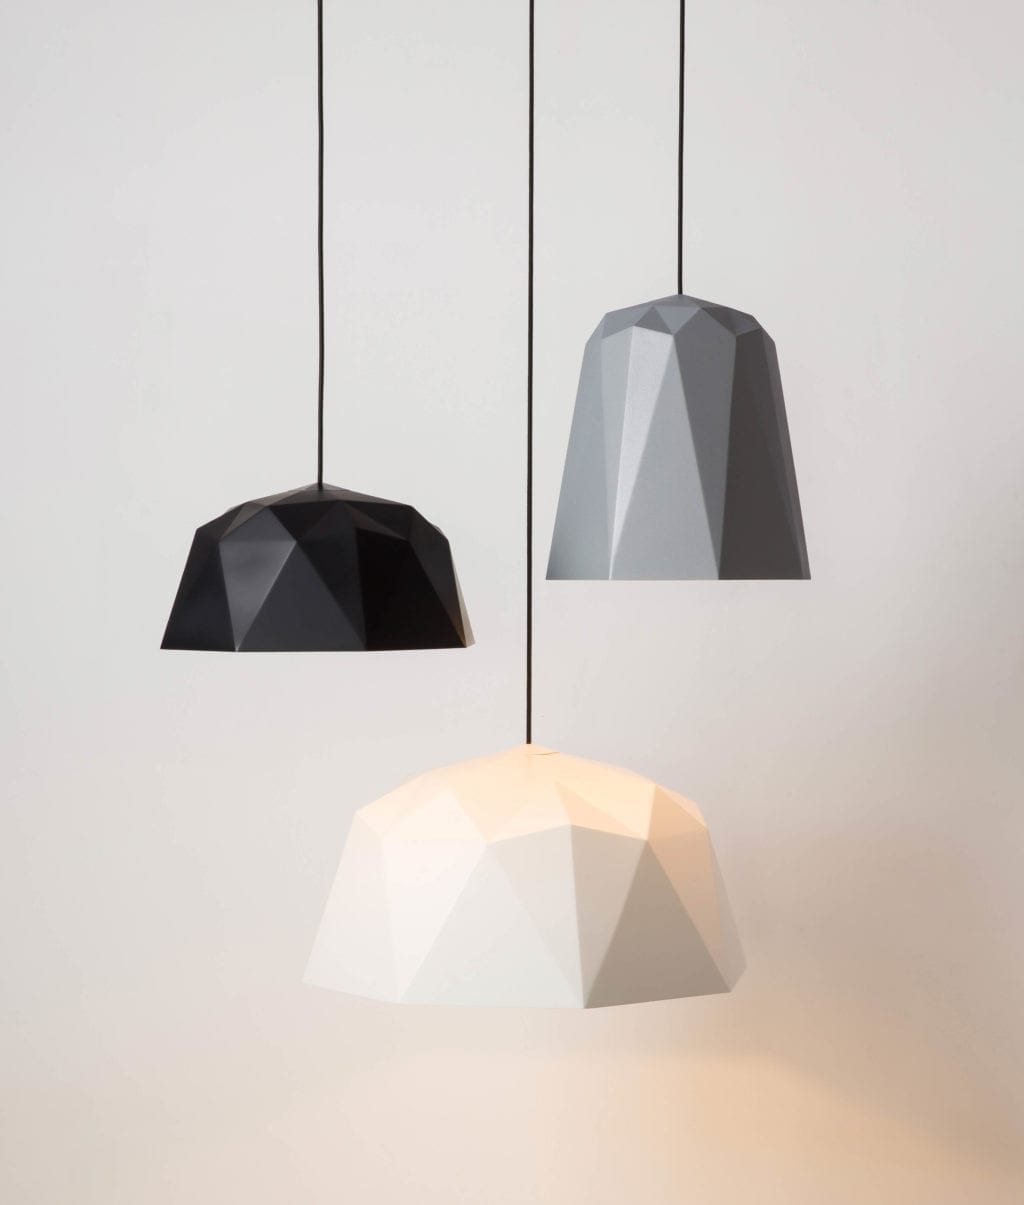 new geometric pendant light shade range suapended against a white background